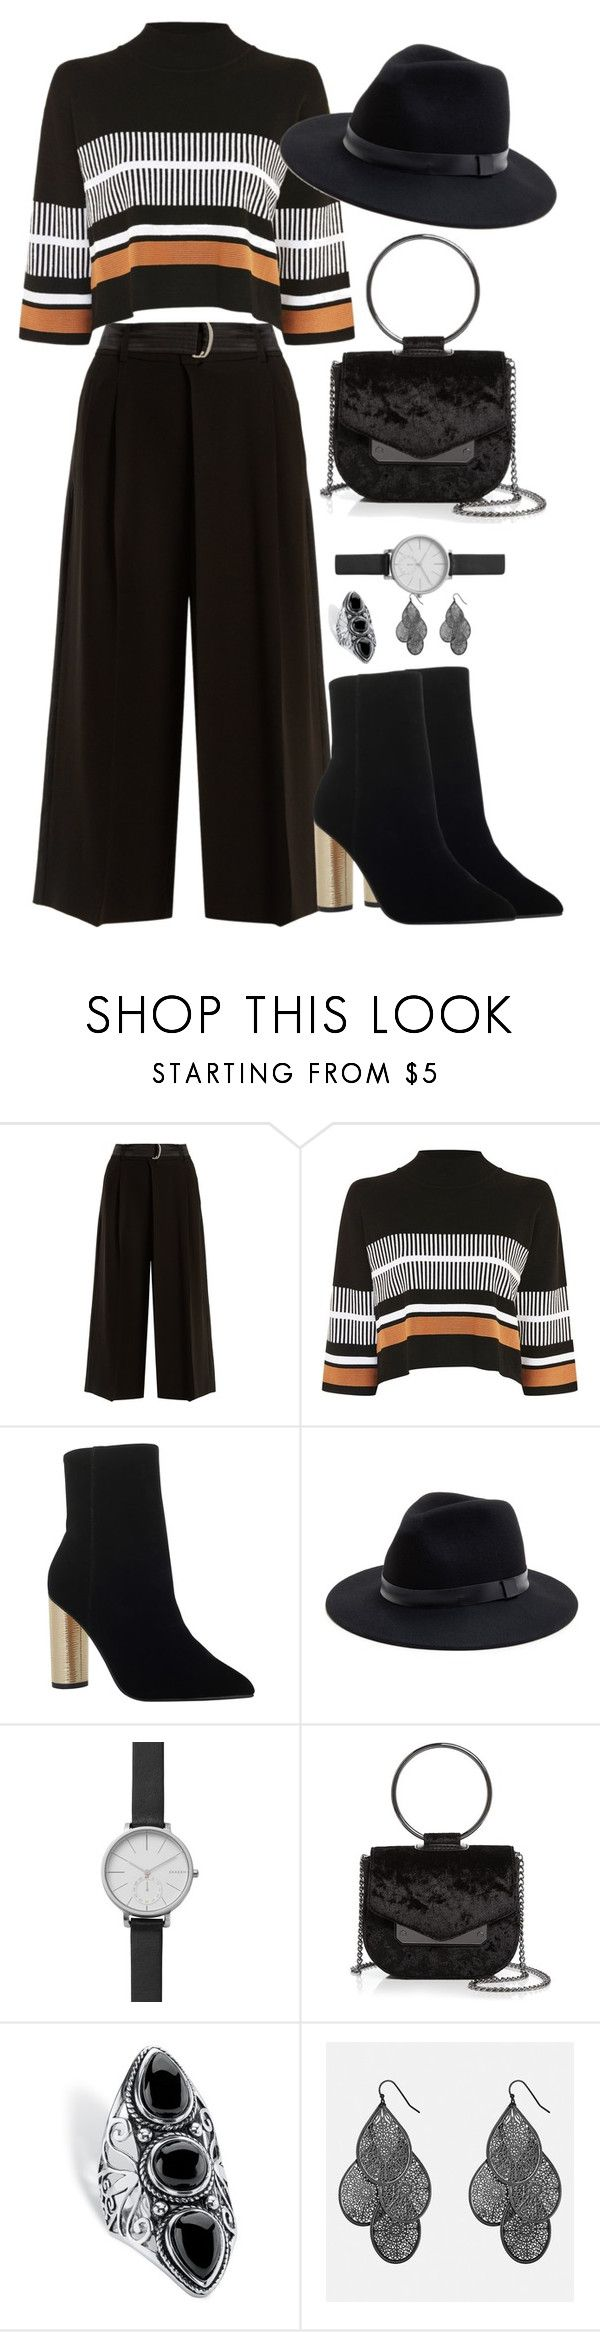 """""""BLACK BOOTIES"""" by nagihaneren ❤ liked on Polyvore featuring Weekend Max Mara, Native Youth, KG Kurt Geiger, Sole Society, Skagen, Nasty Gal, Palm Beach Jewelry and Avenue"""